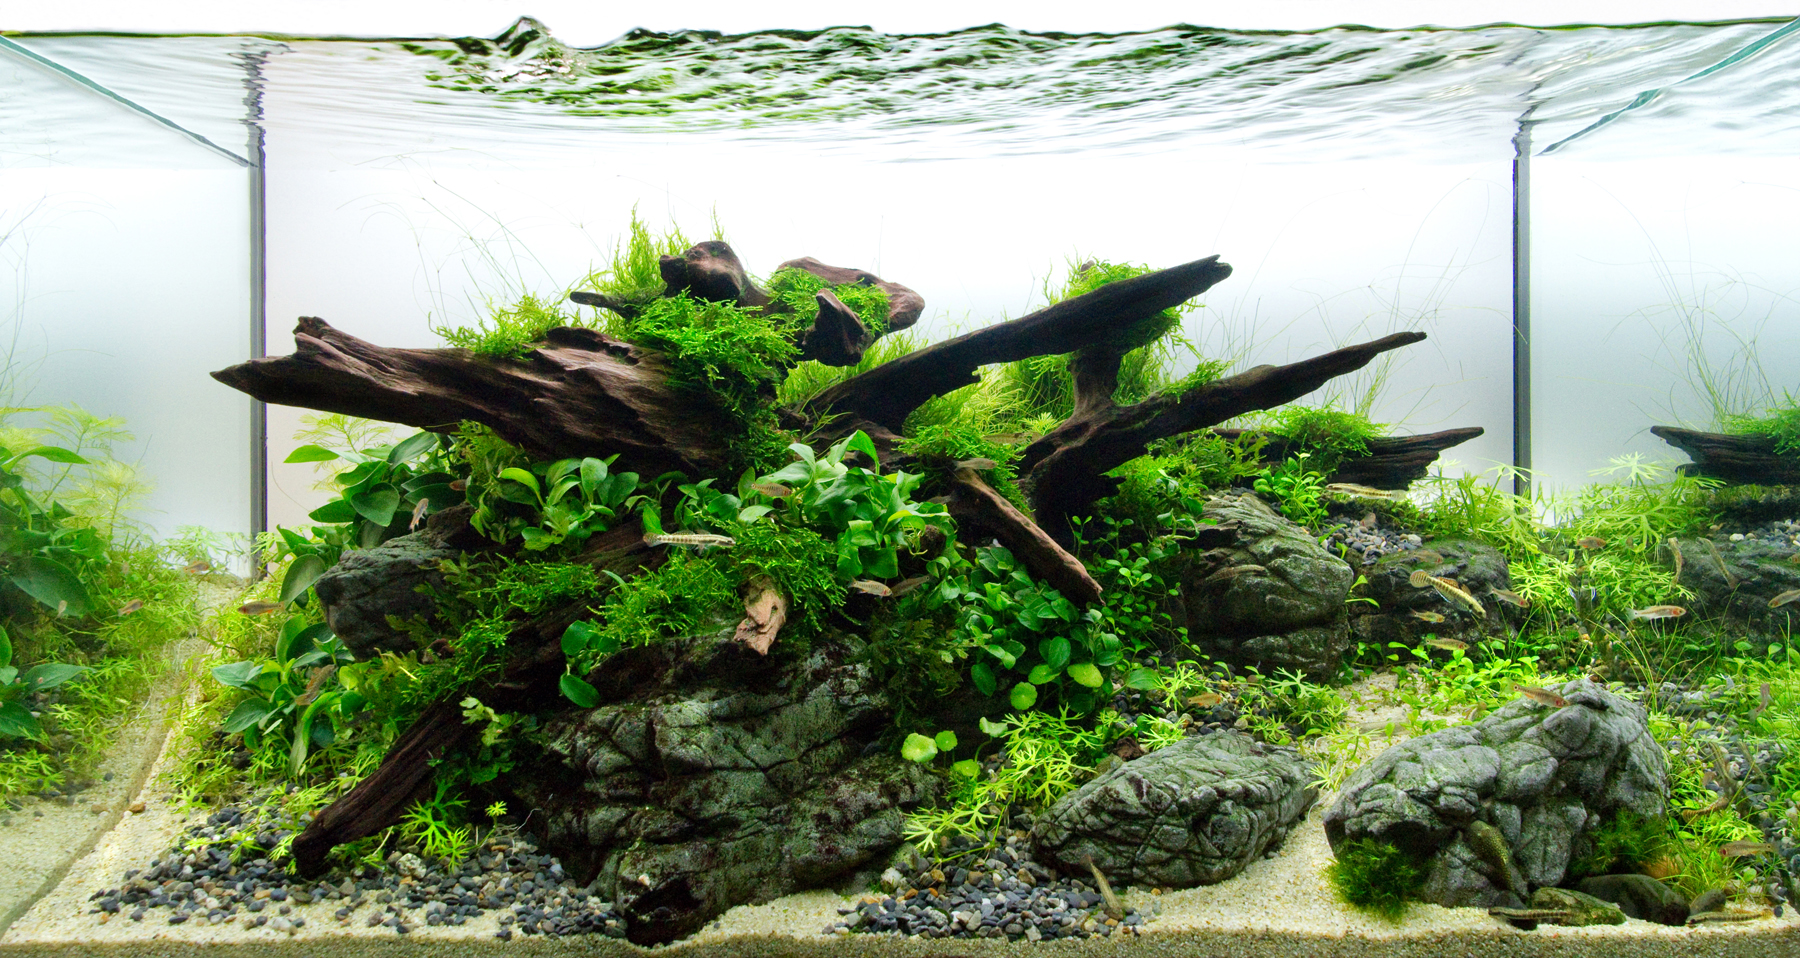 Aquascape With Rocks And Wood